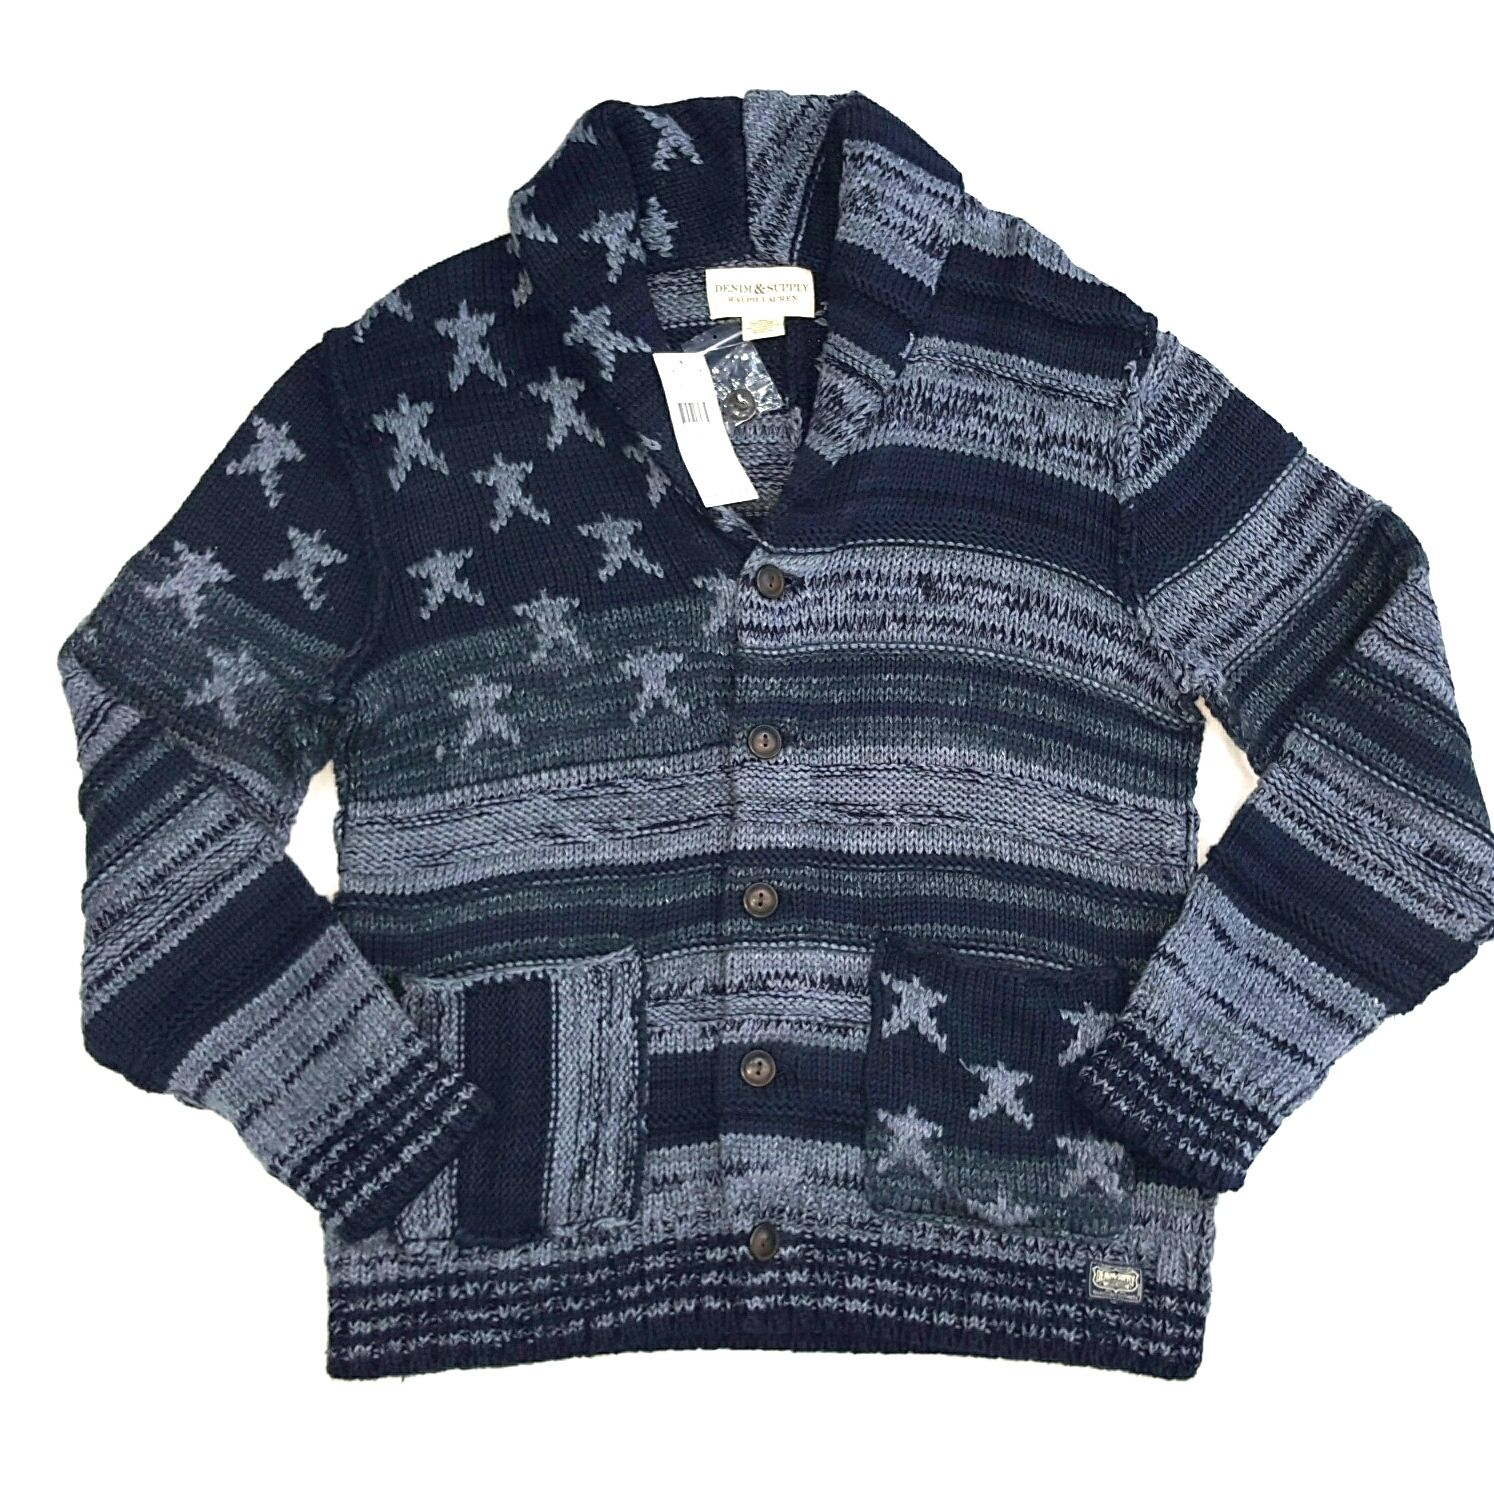 DENIM & SUPPLY RALPH LAUREN AMERICANA U.S.A CARDIGAN SWEATER Blau